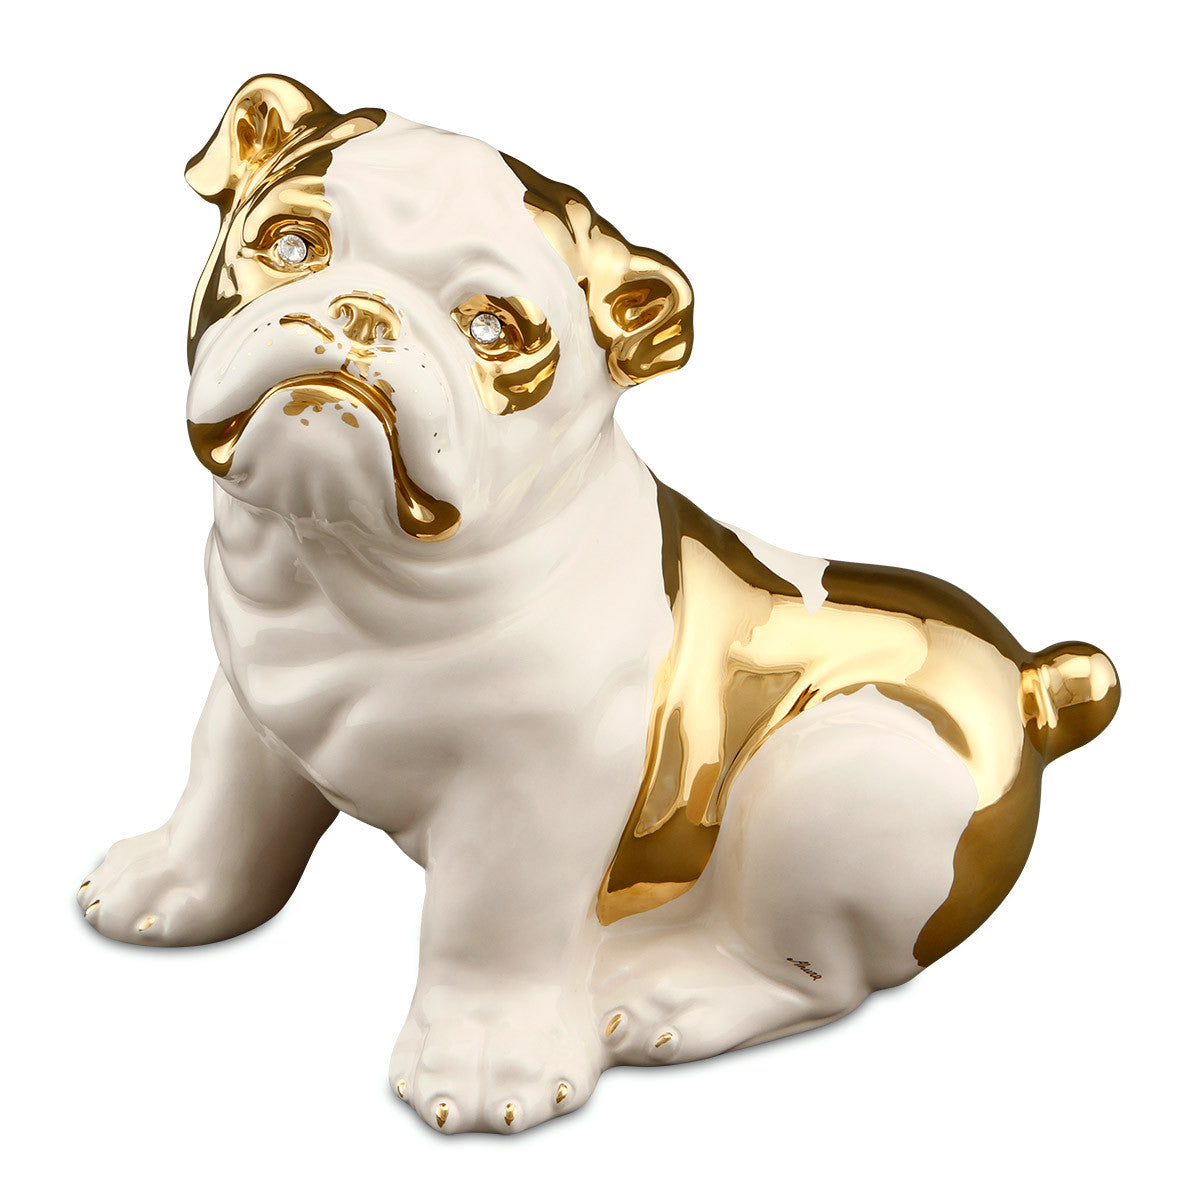 Ceramic sitting bulldog statue with gold